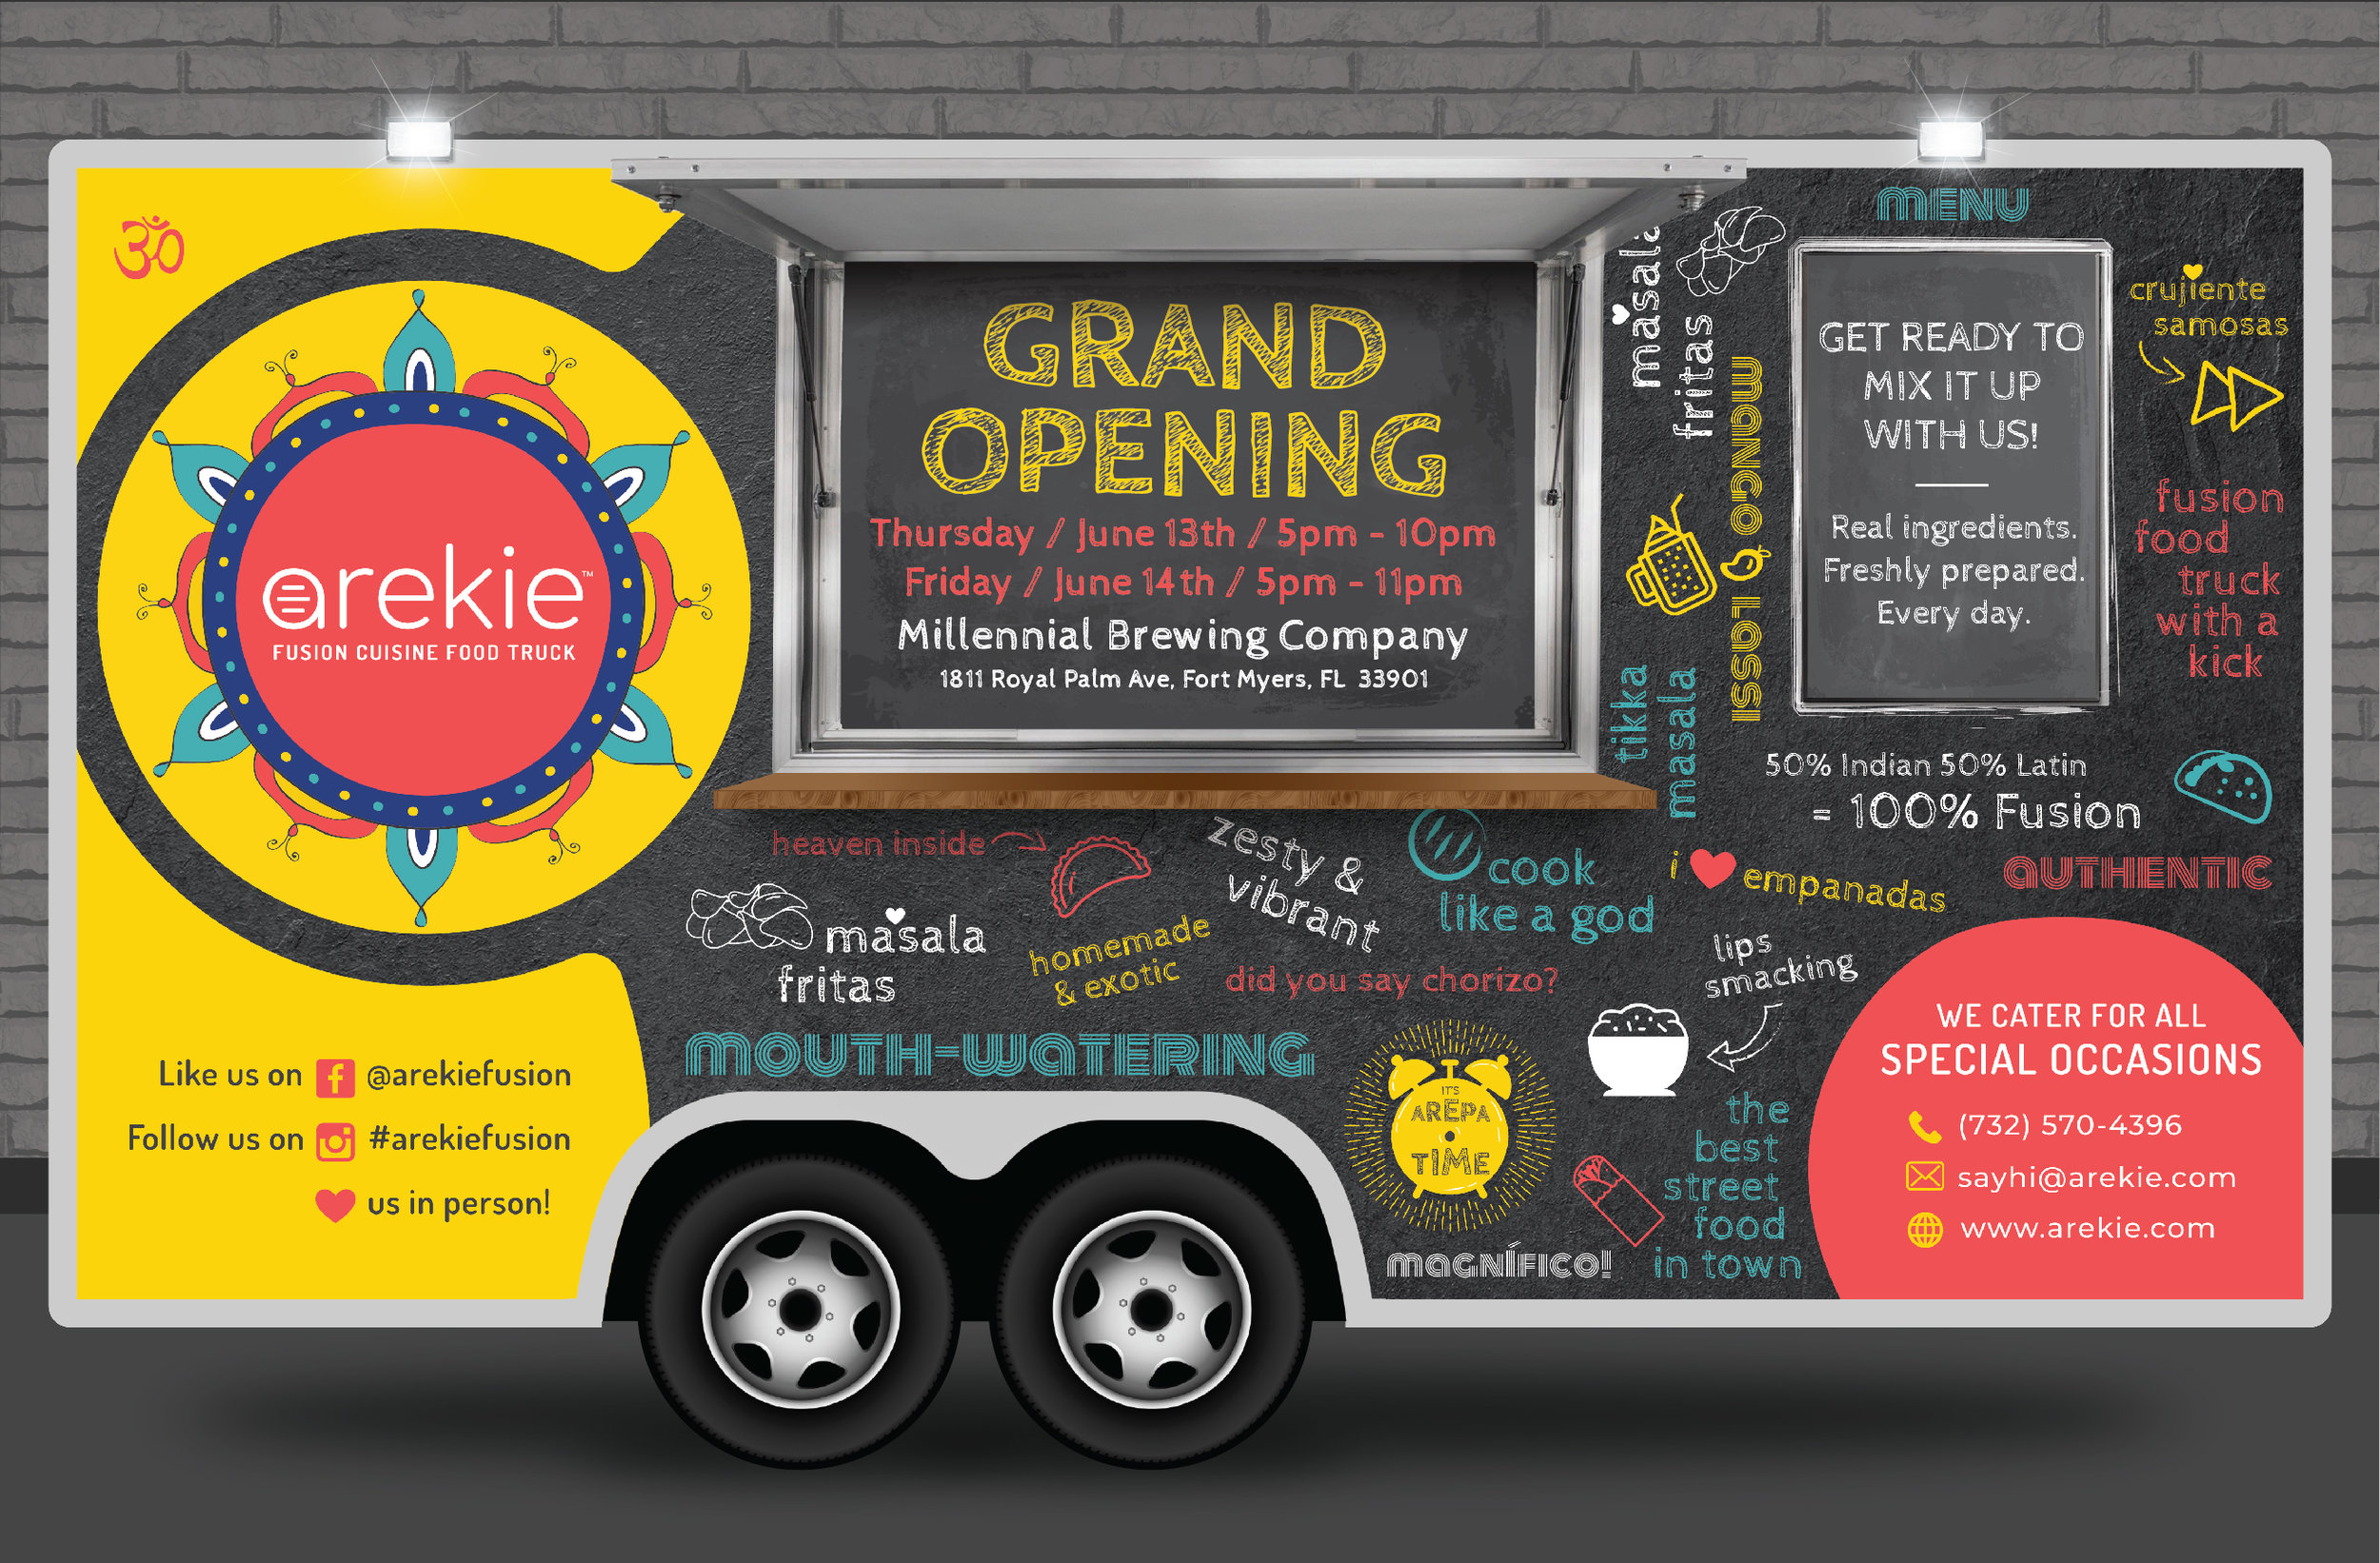 We are crazy proud to announce the Grand Opening of our new Fusion Cuisine Food Truck—AREKIE!  Fresh ingredients transformed by even fresher combinations. The unexpected fusion of Latin and Indian foods presented with street style. Fun, creative food that tastes both homemade and exotic—all in the same bite.  Get ready to mix it up with us!